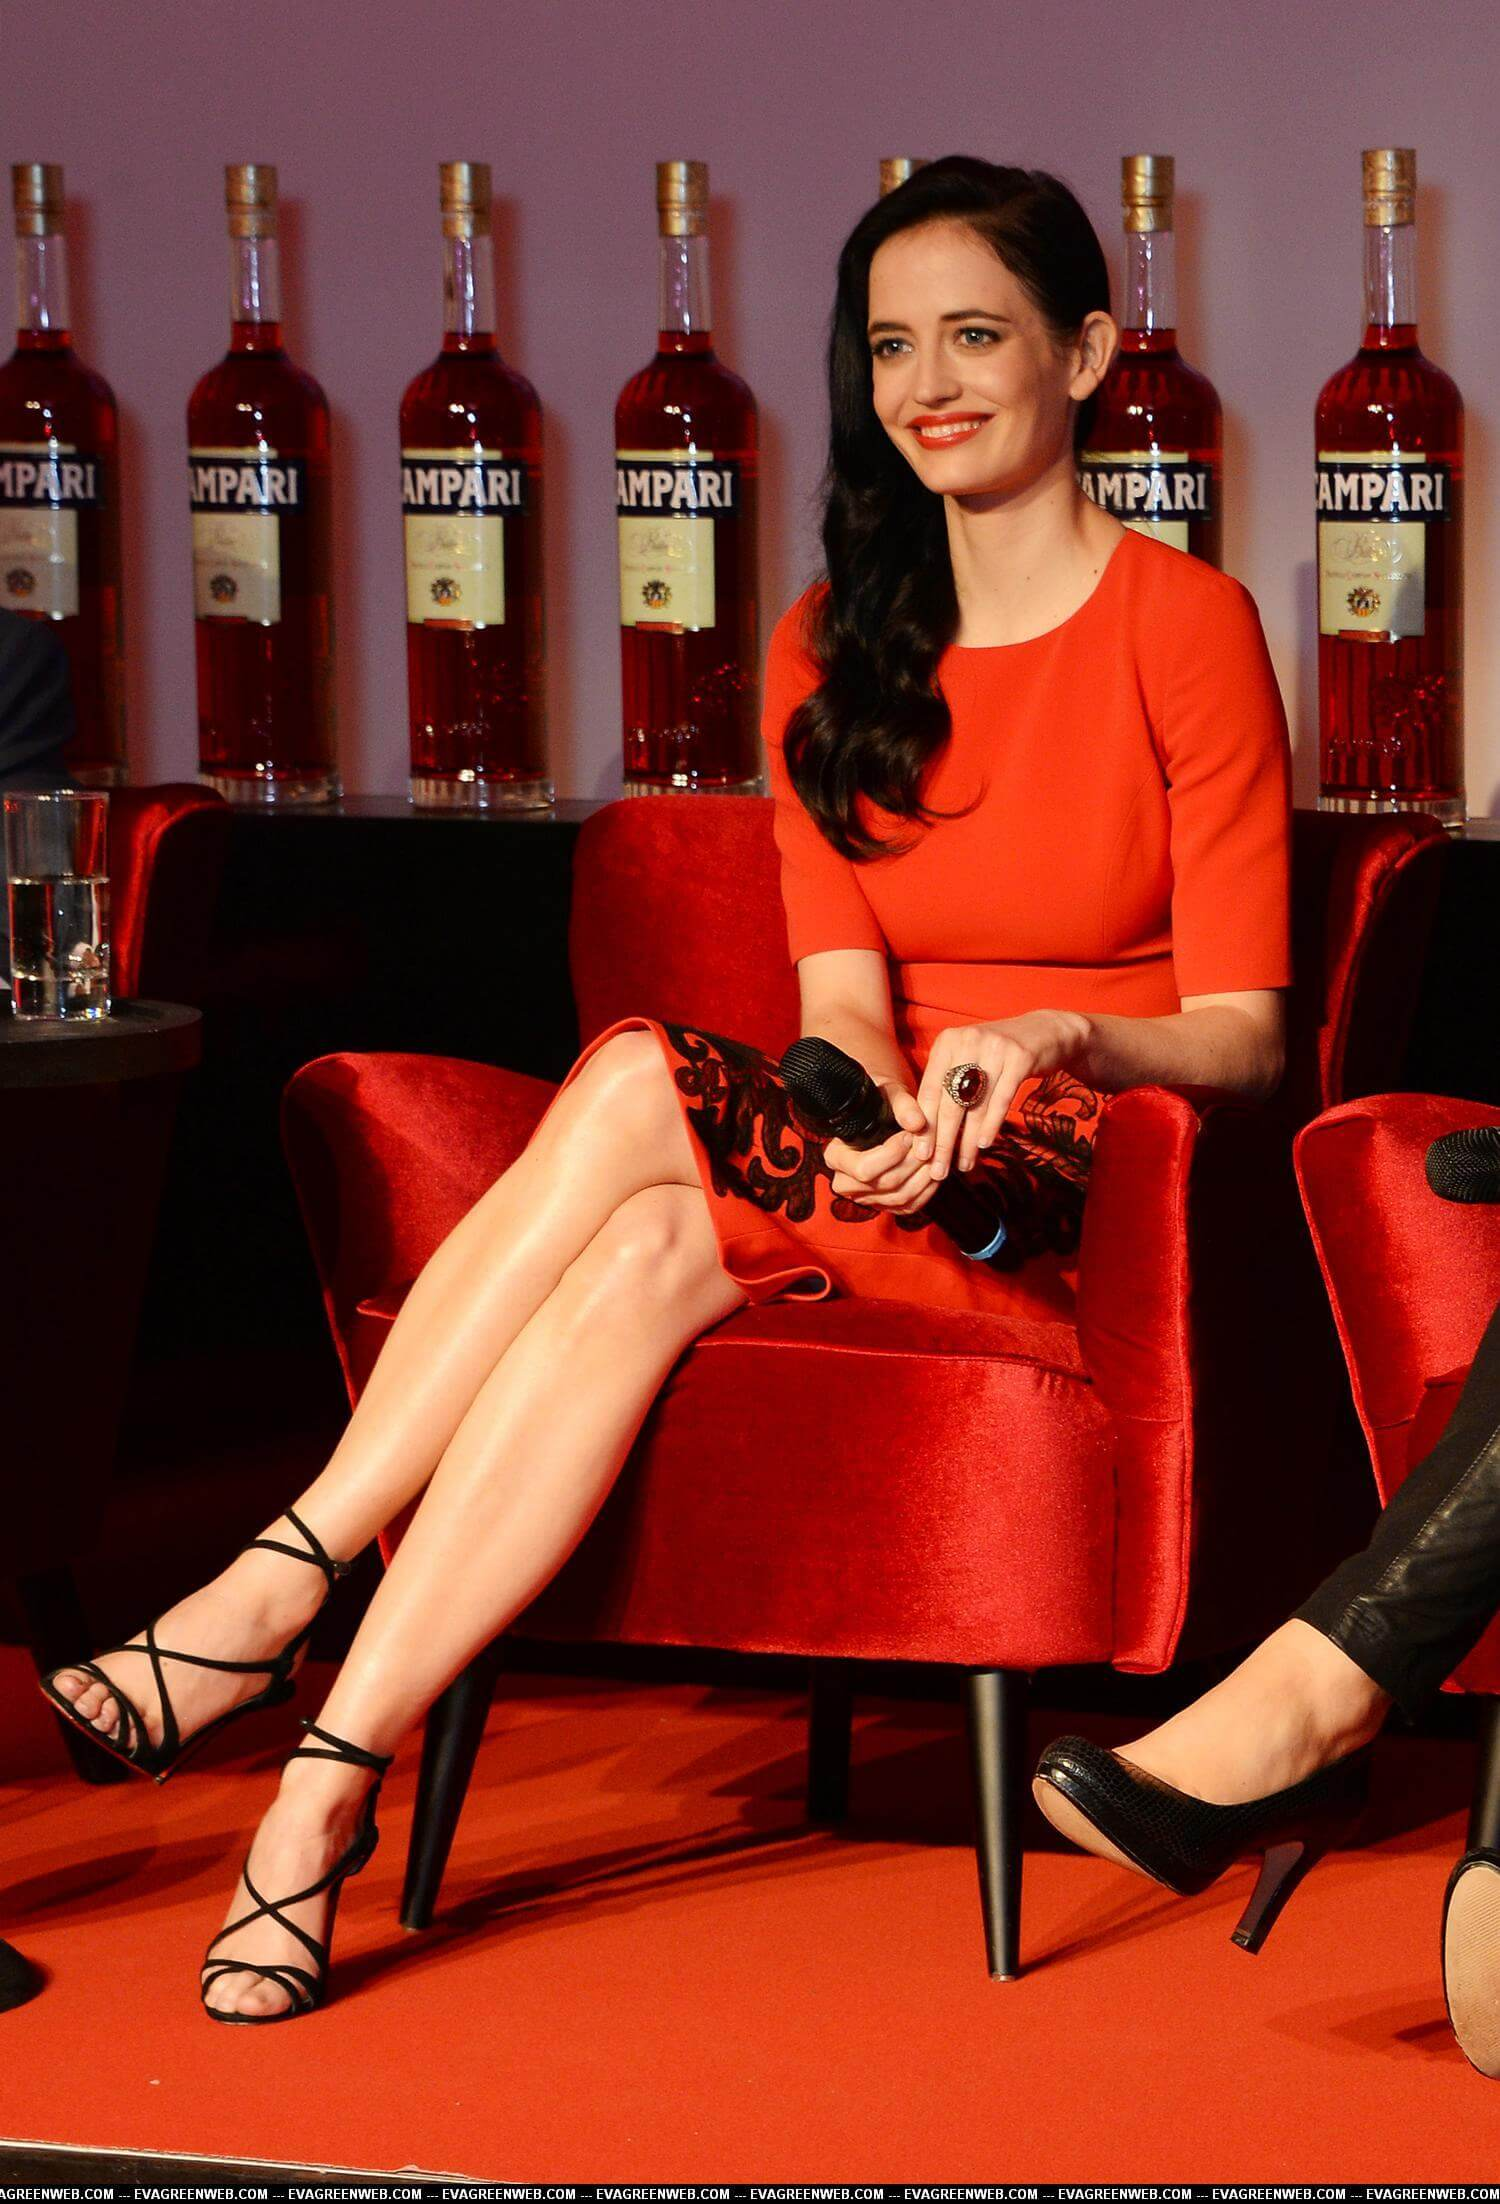 eva green Sexy Bare Feet